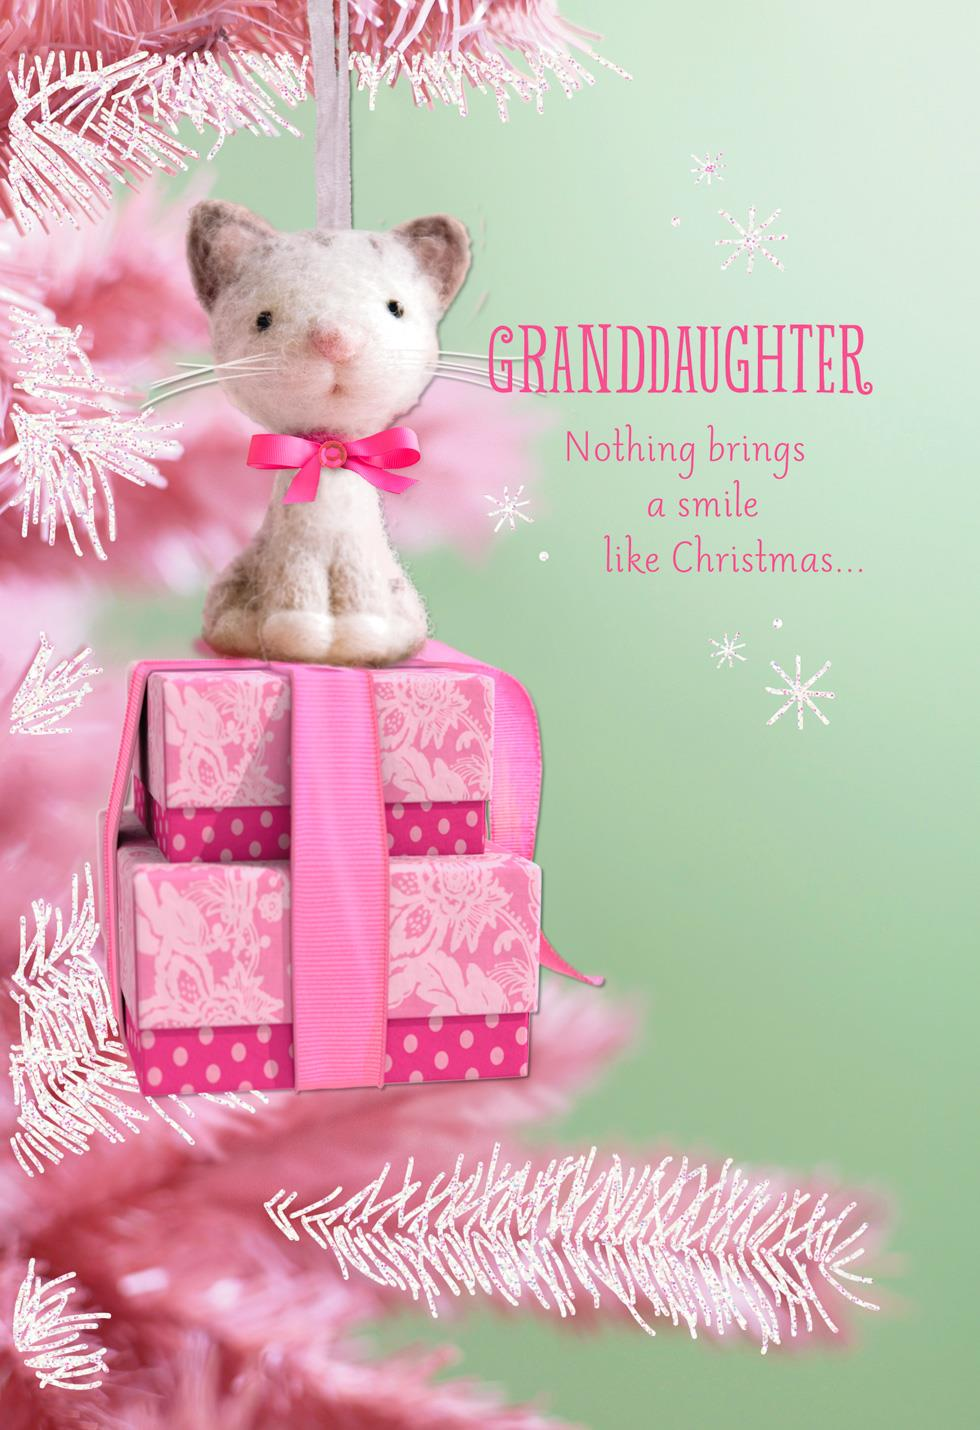 pink cat ornament christmas card for granddaughter